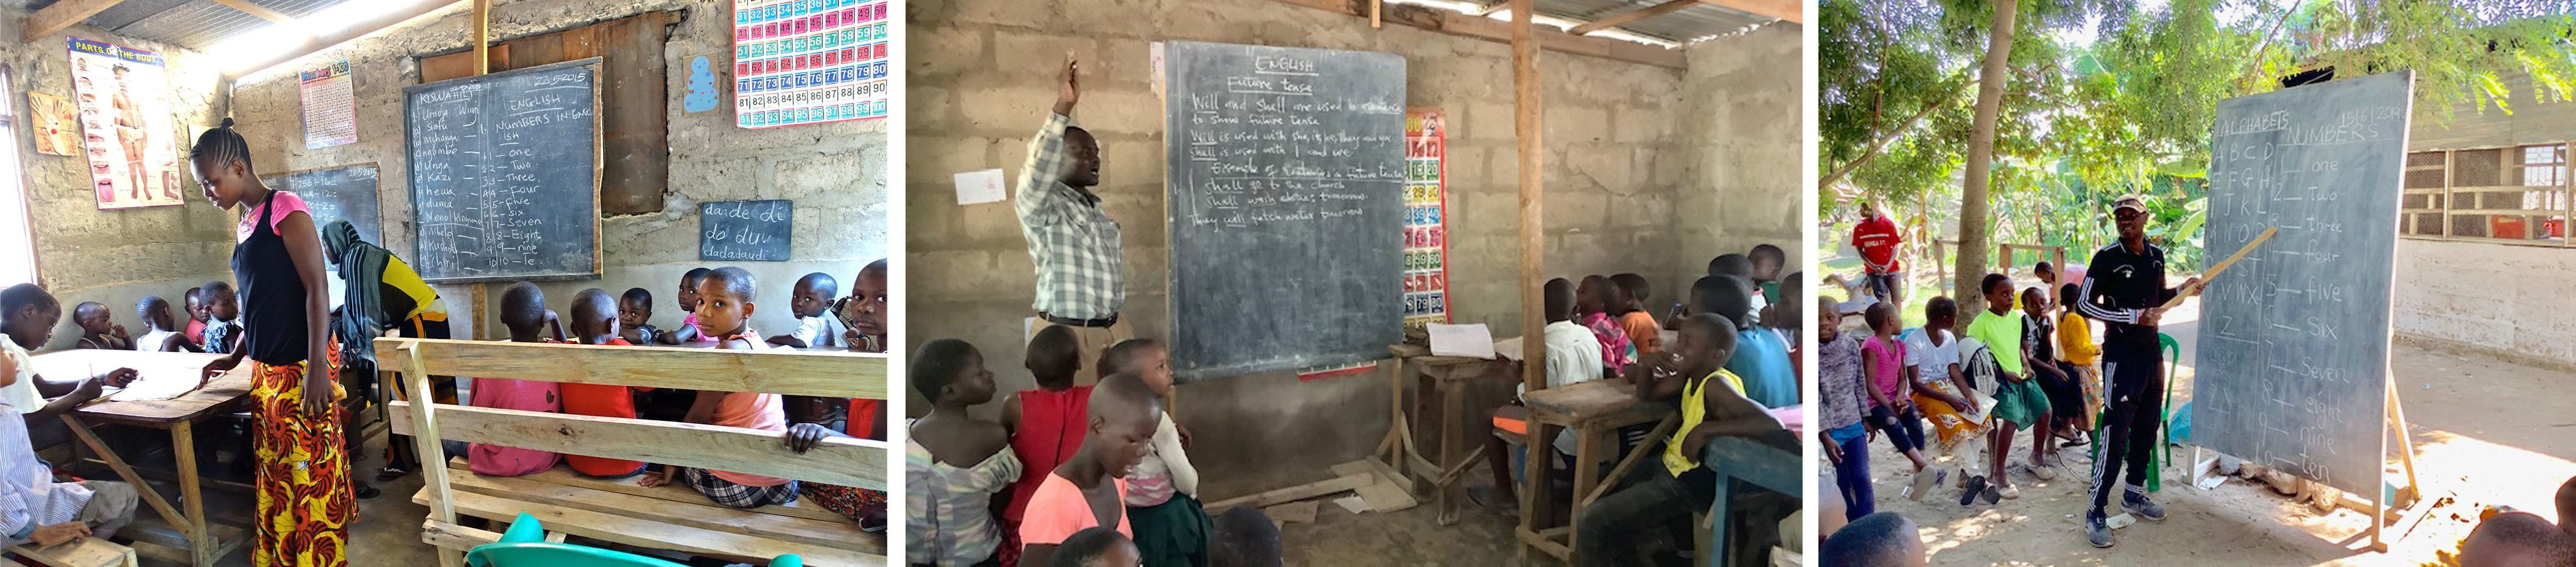 Collage of photos: 1. group of children in the classroom 2. a teacher teaching students in his classroom 3. a teacher teaching in an outdoor classroom.